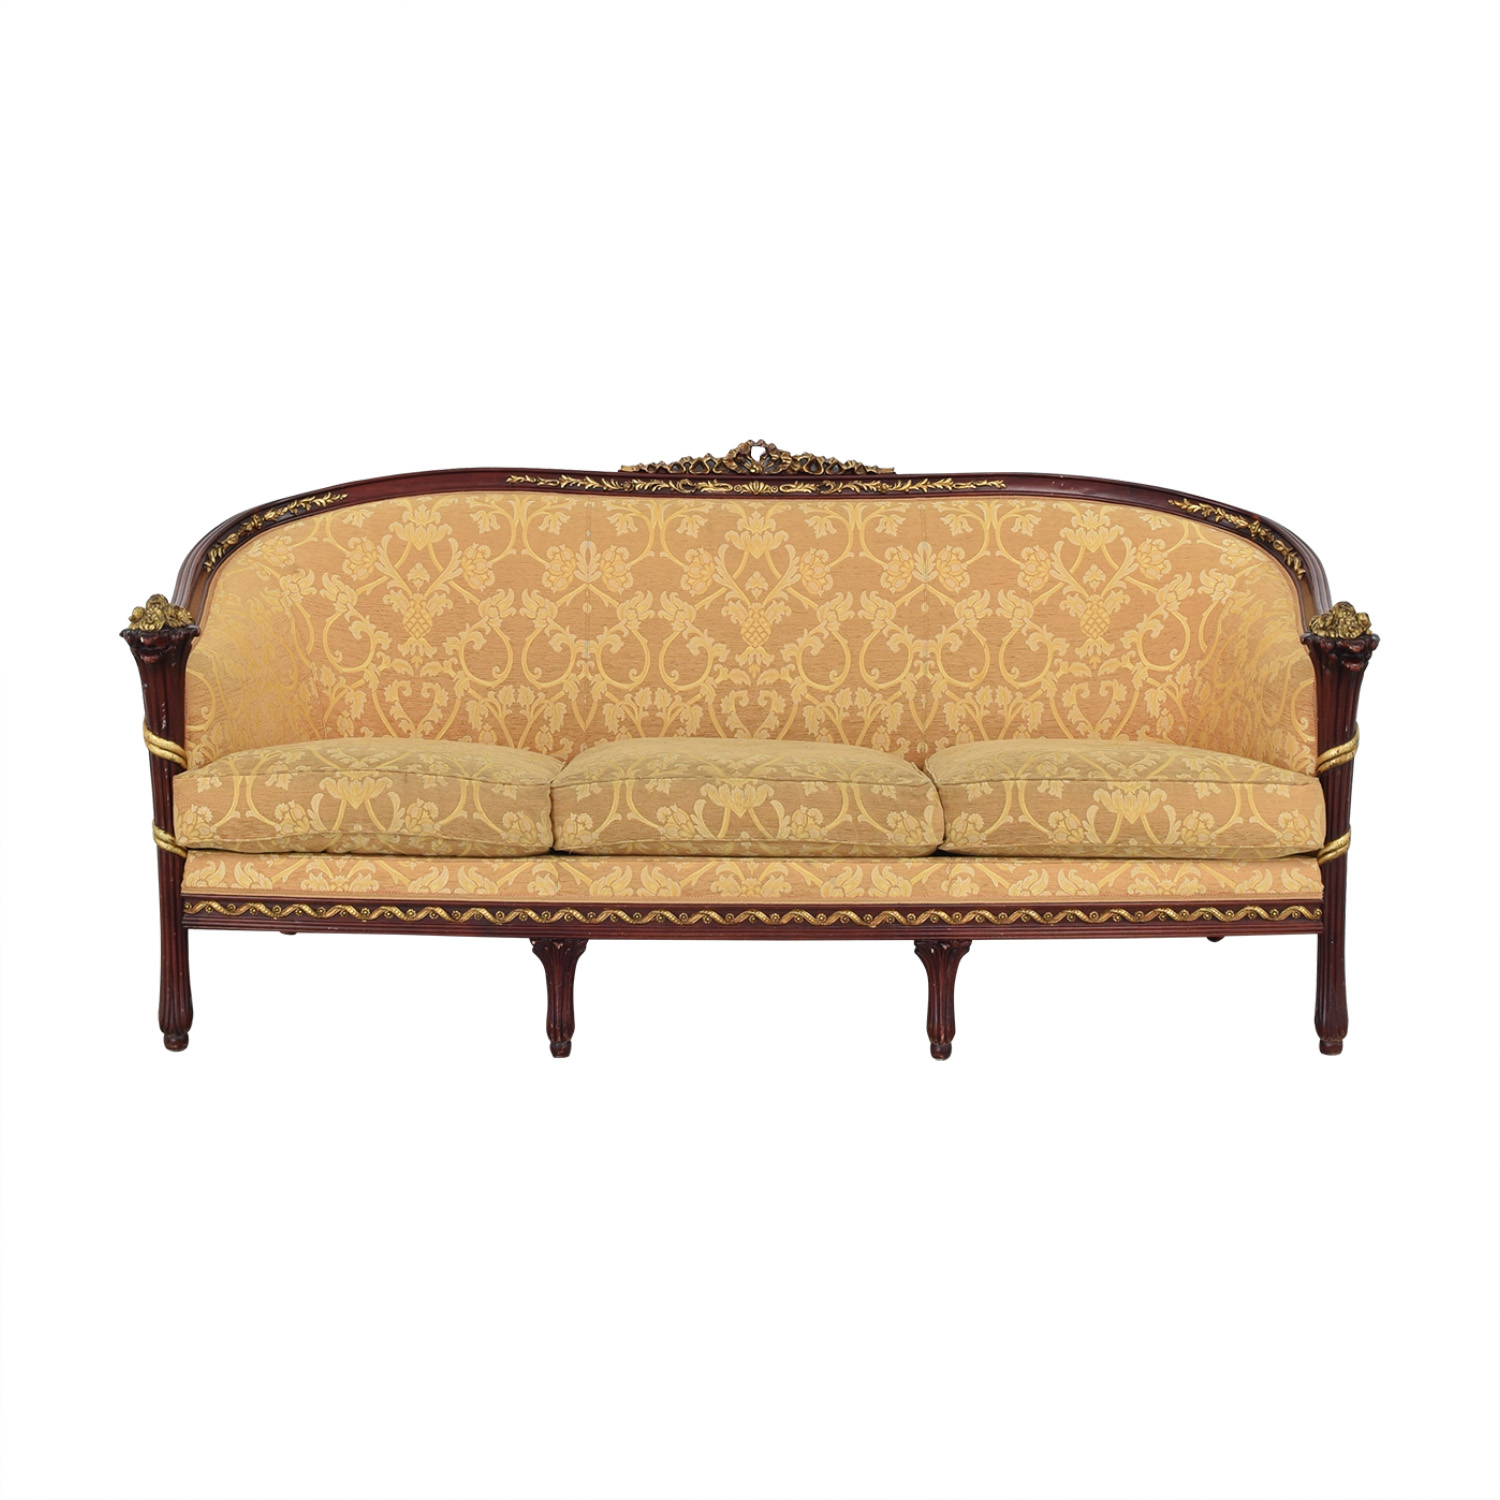 European-Influenced Sofa Sofas